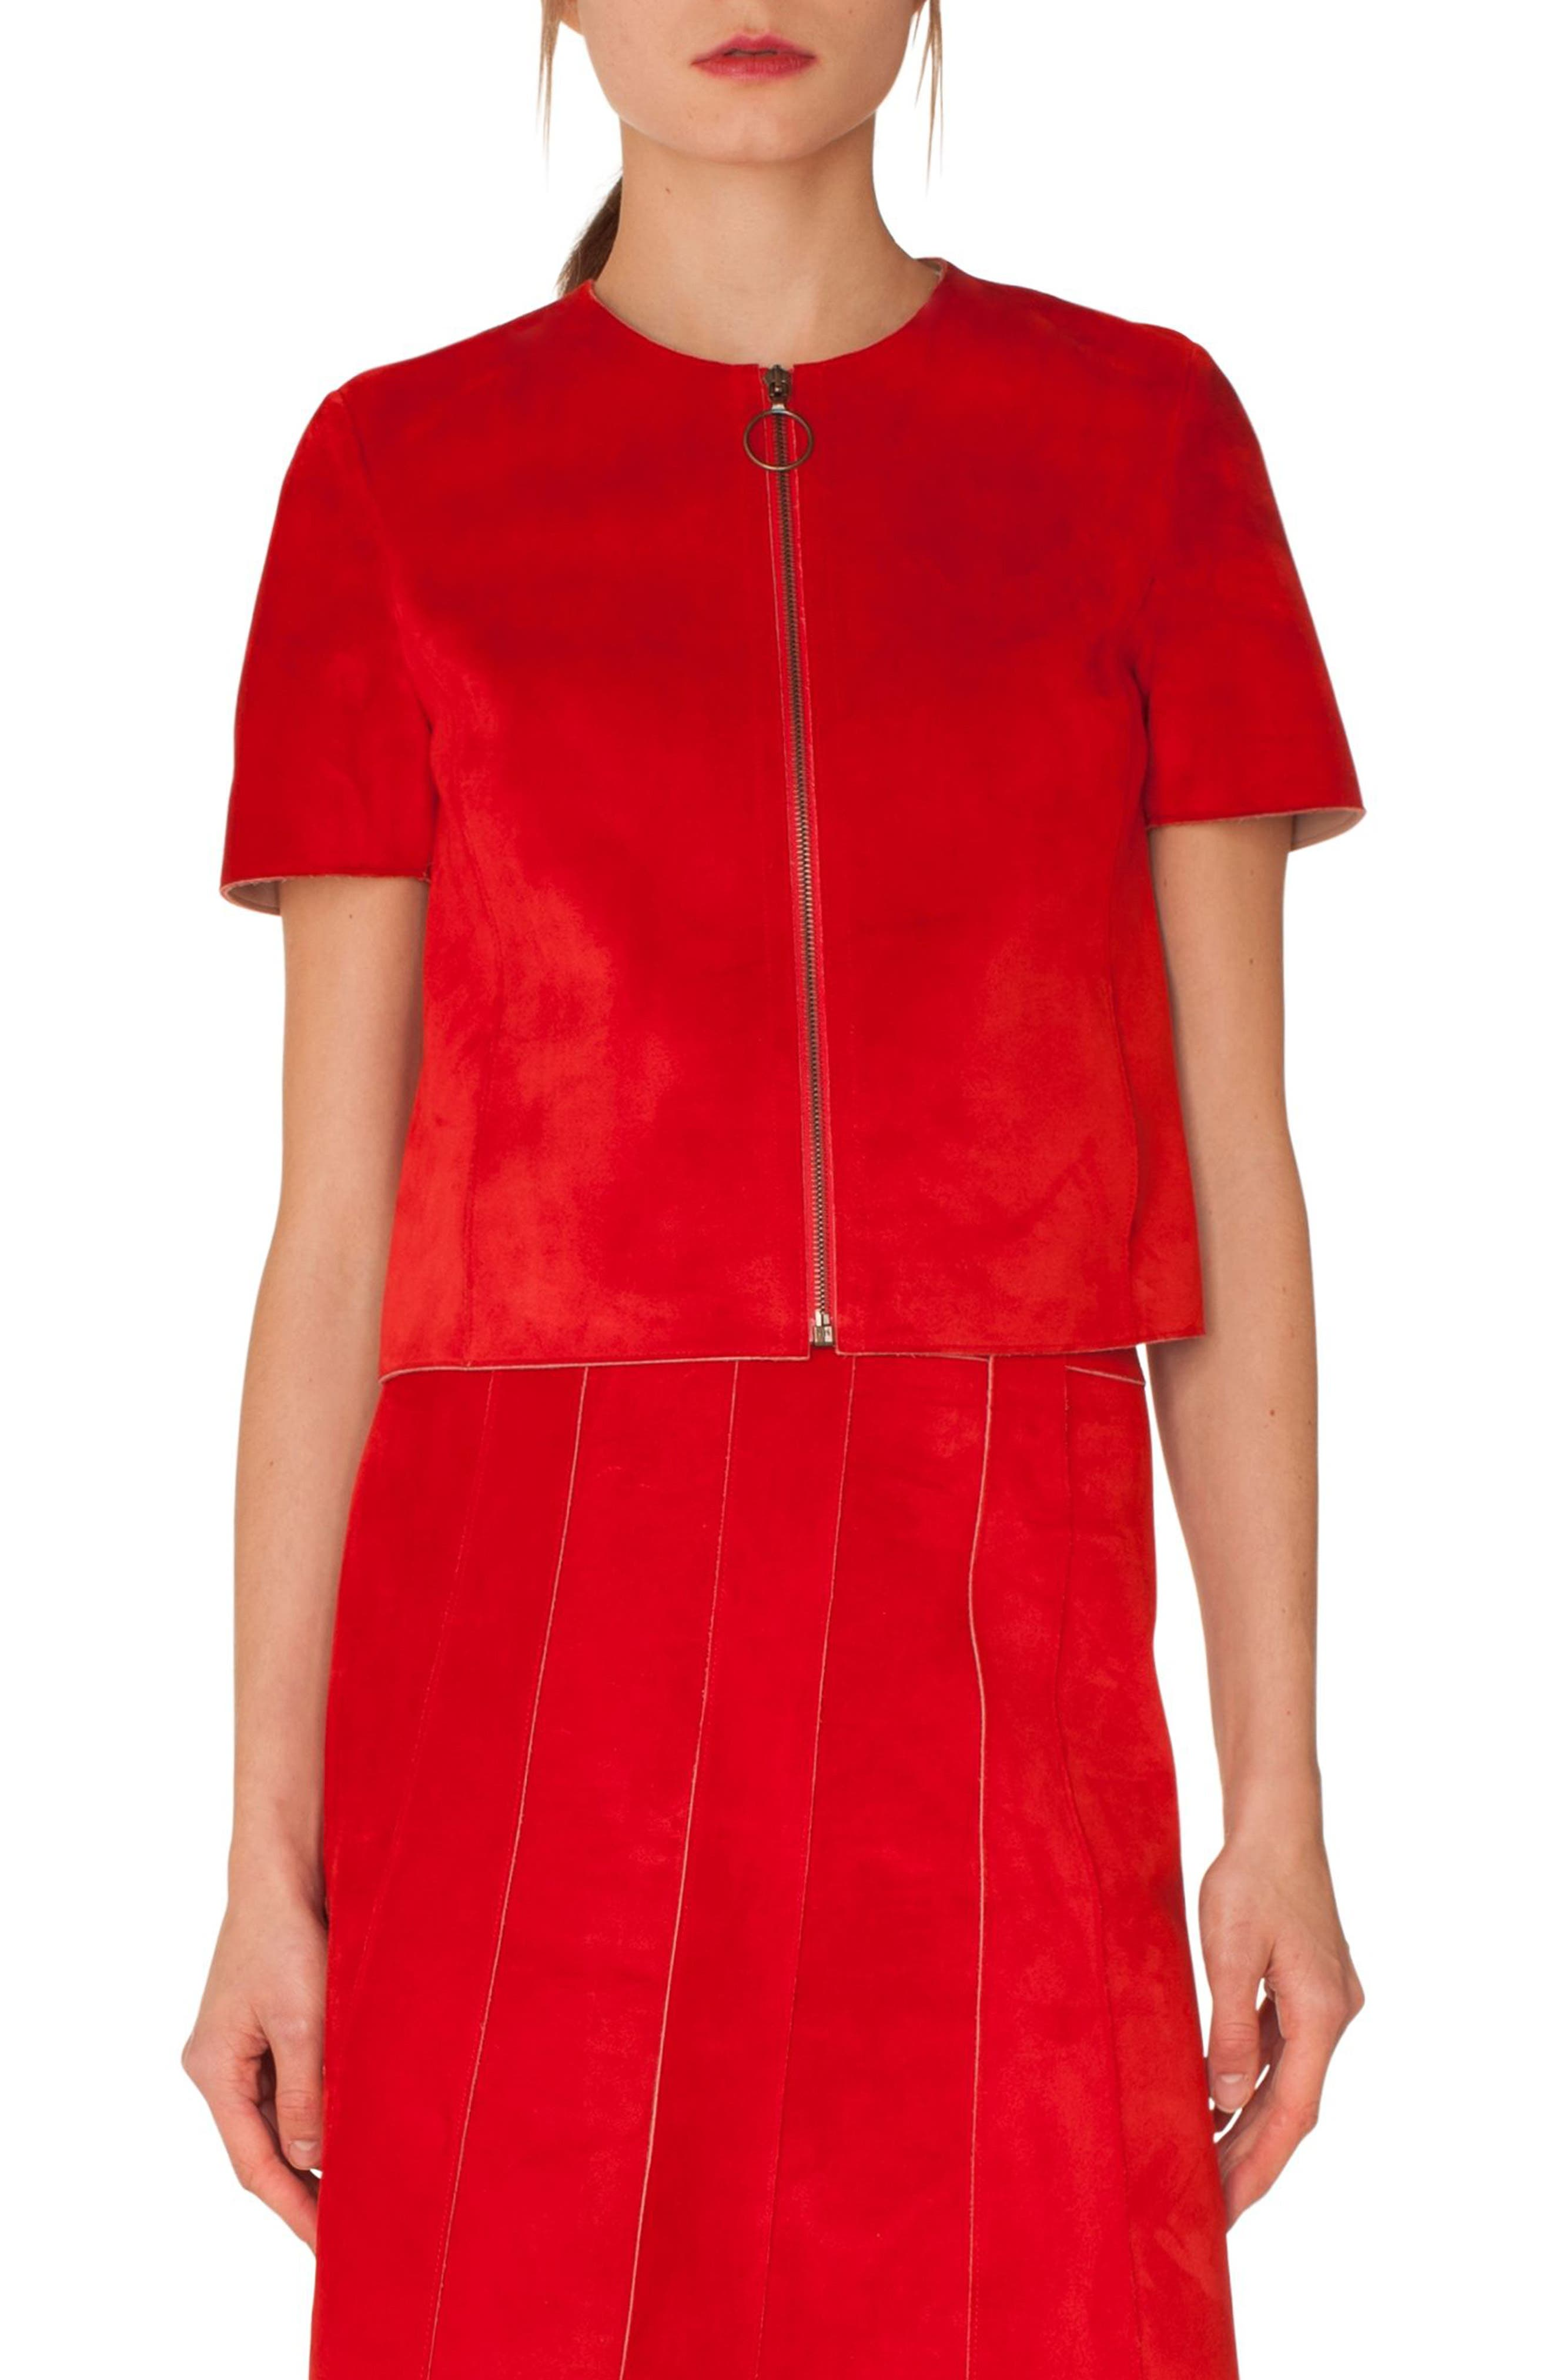 AKRIS PUNTO Zip-Front Short-Sleeve Leather Suede Jacket in Lipstick